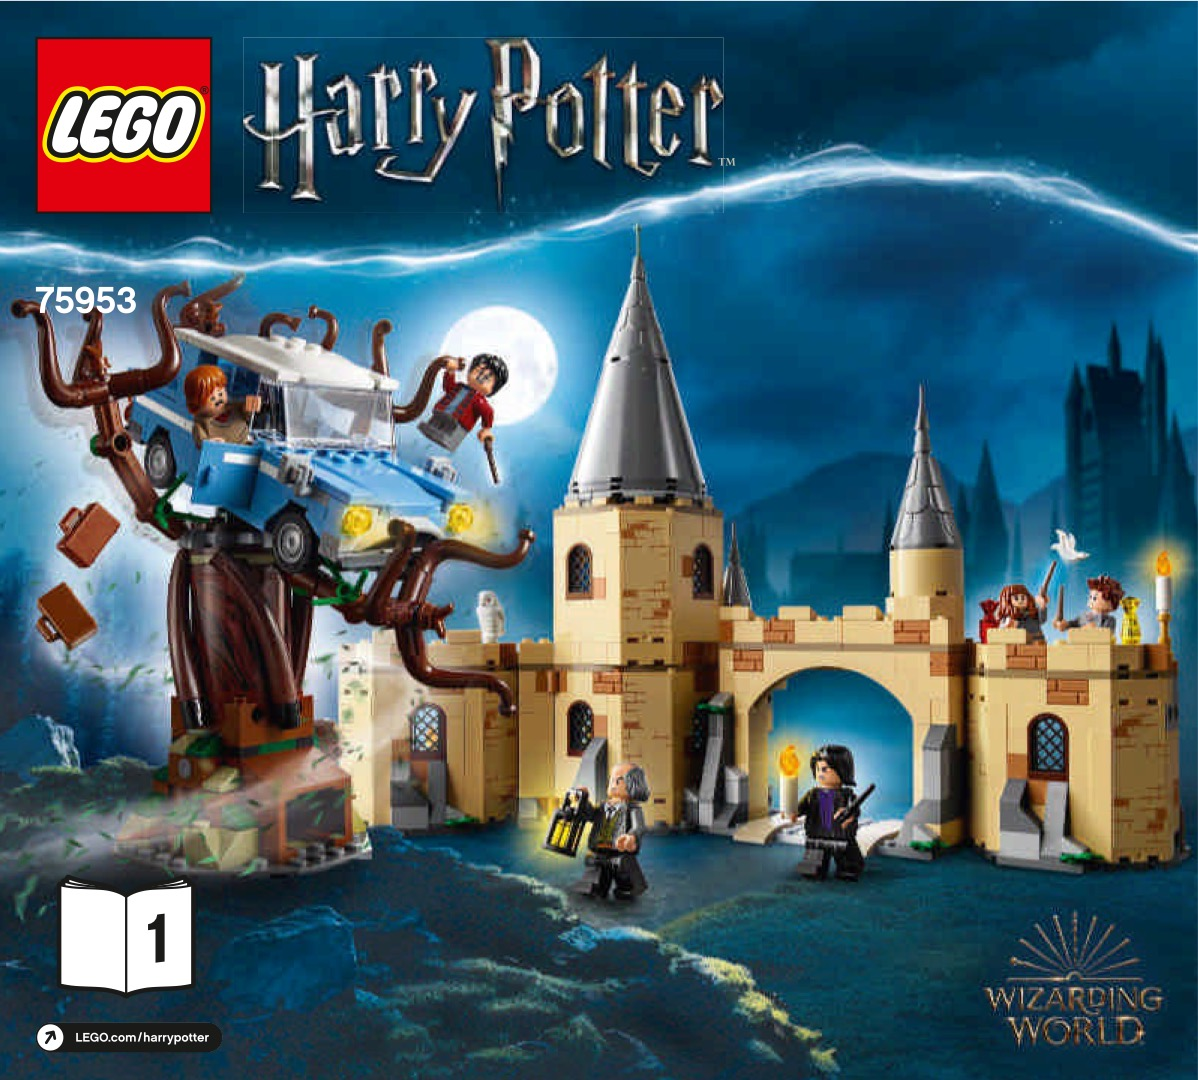 Lego Harry Potter Hogwarts Whomping Willow Building Set box